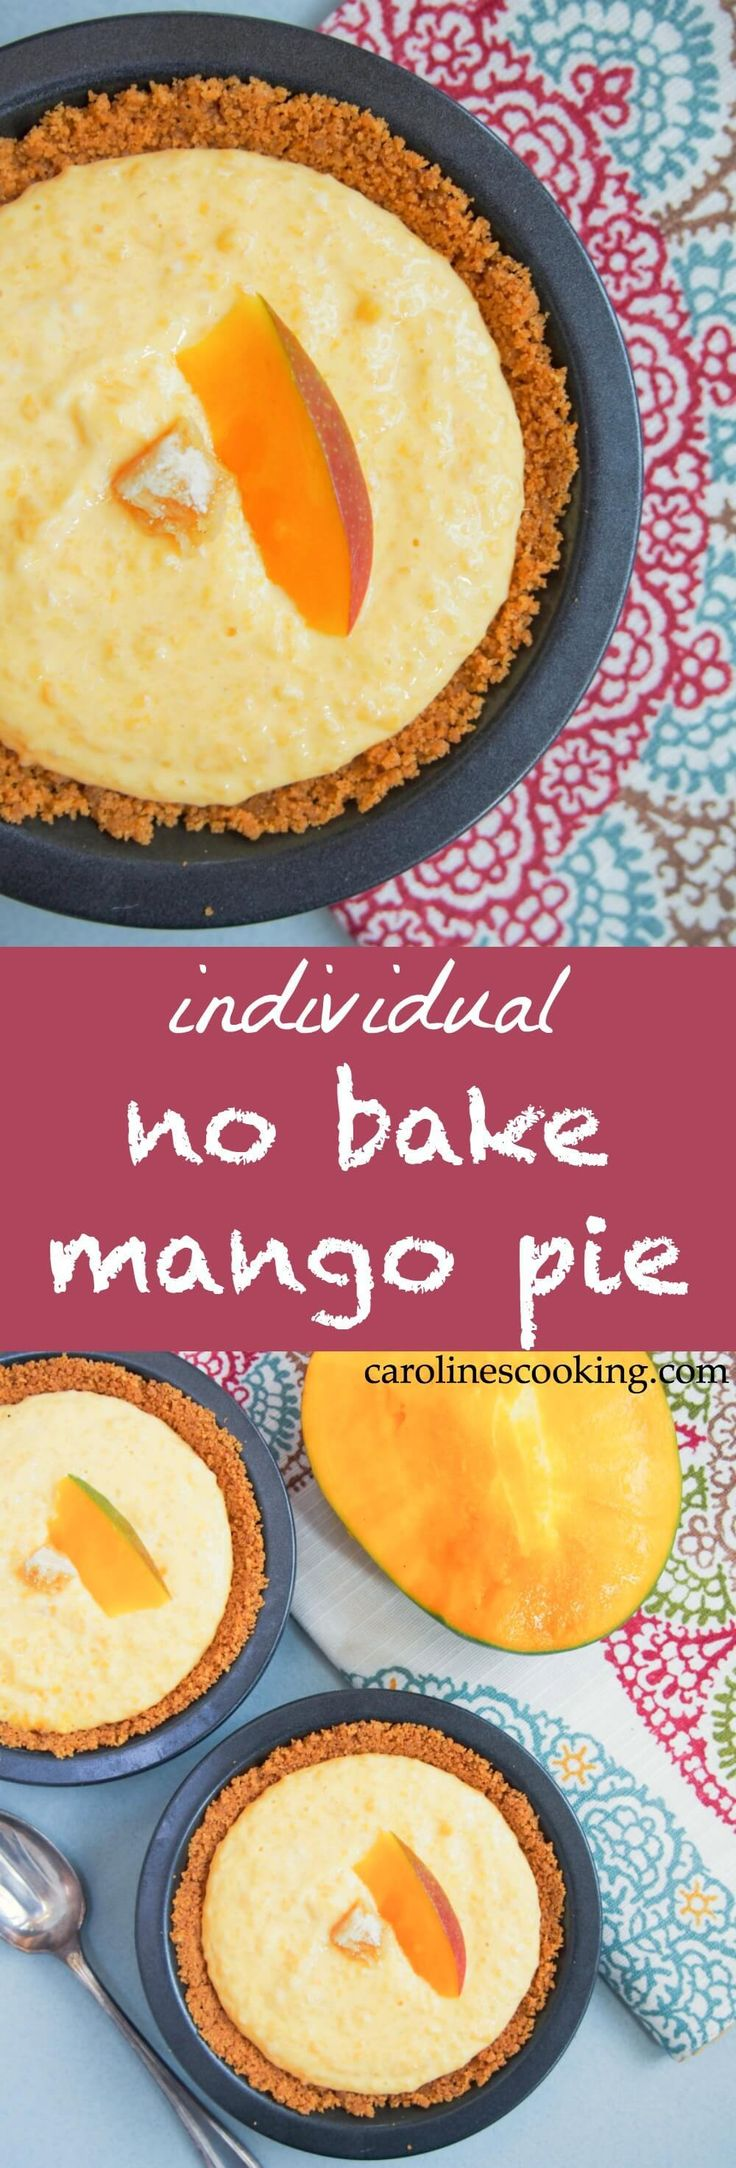 This individual no bake mango pie is a super easy dessert that comes together in no time. With hardly any ingredients, it's tasty & that bit healthier too.